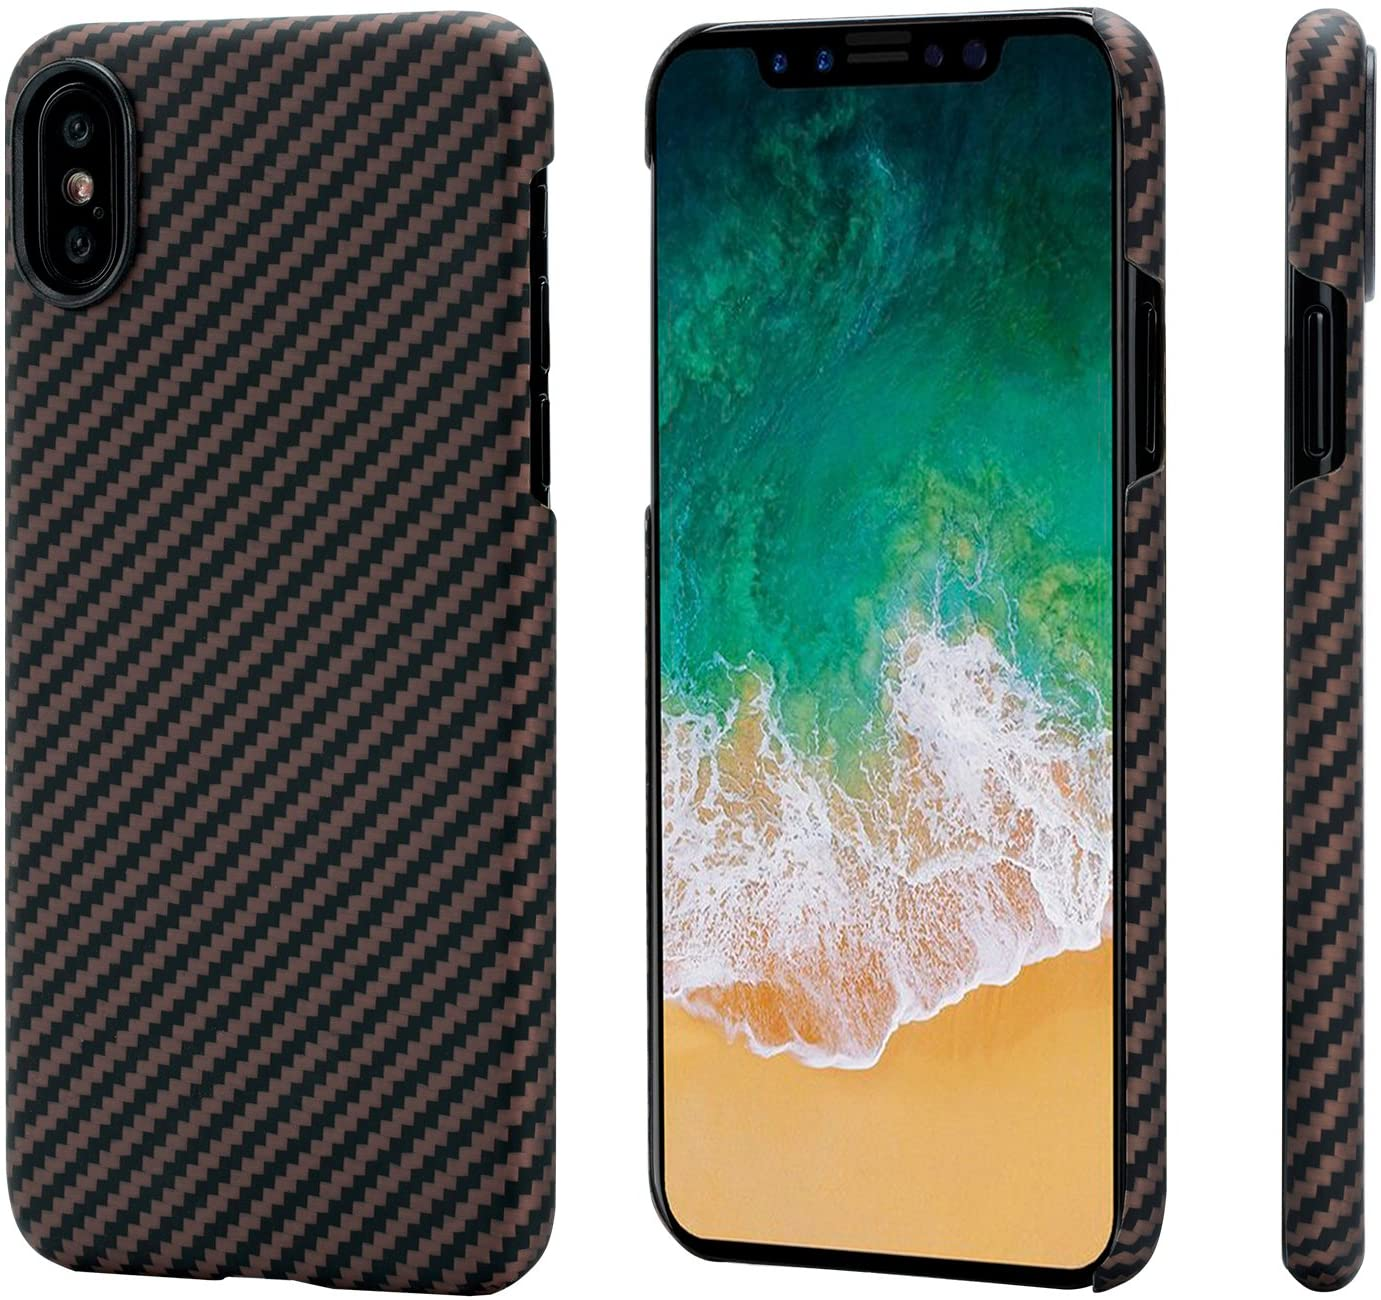 """PITAKA Magnetic Slim Case Compatible with iPhone X 5.8"""", MagEZ Case Aramid Fiber [Real Body Armor Material] Phone Case,Minimalist Strongest Durable Snugly Fit Snap-on Case - Black/Golden"""